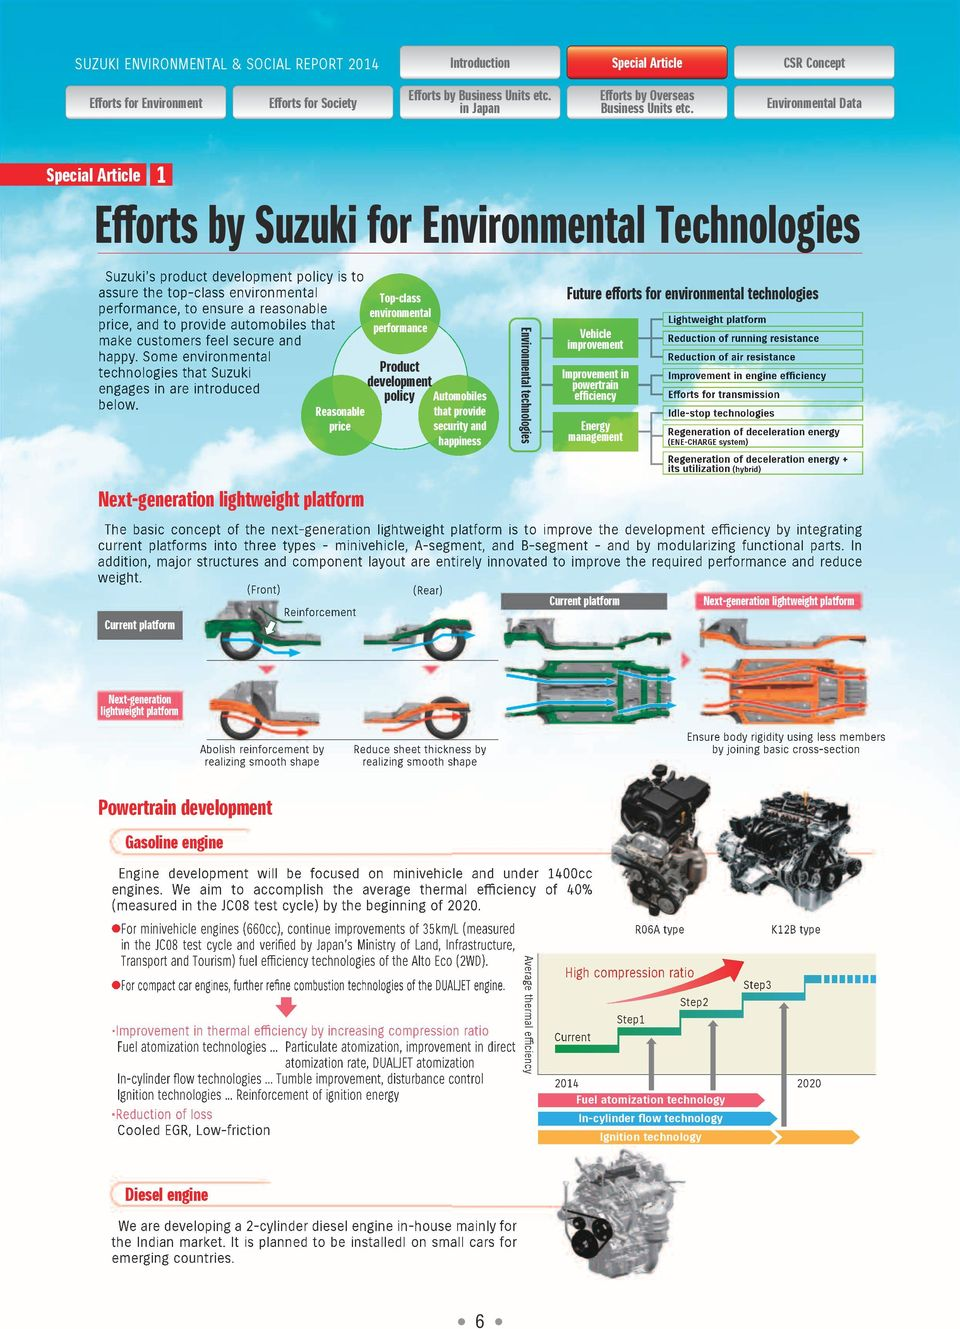 Some environmental technologies that Suzuki engages in are introduced below.